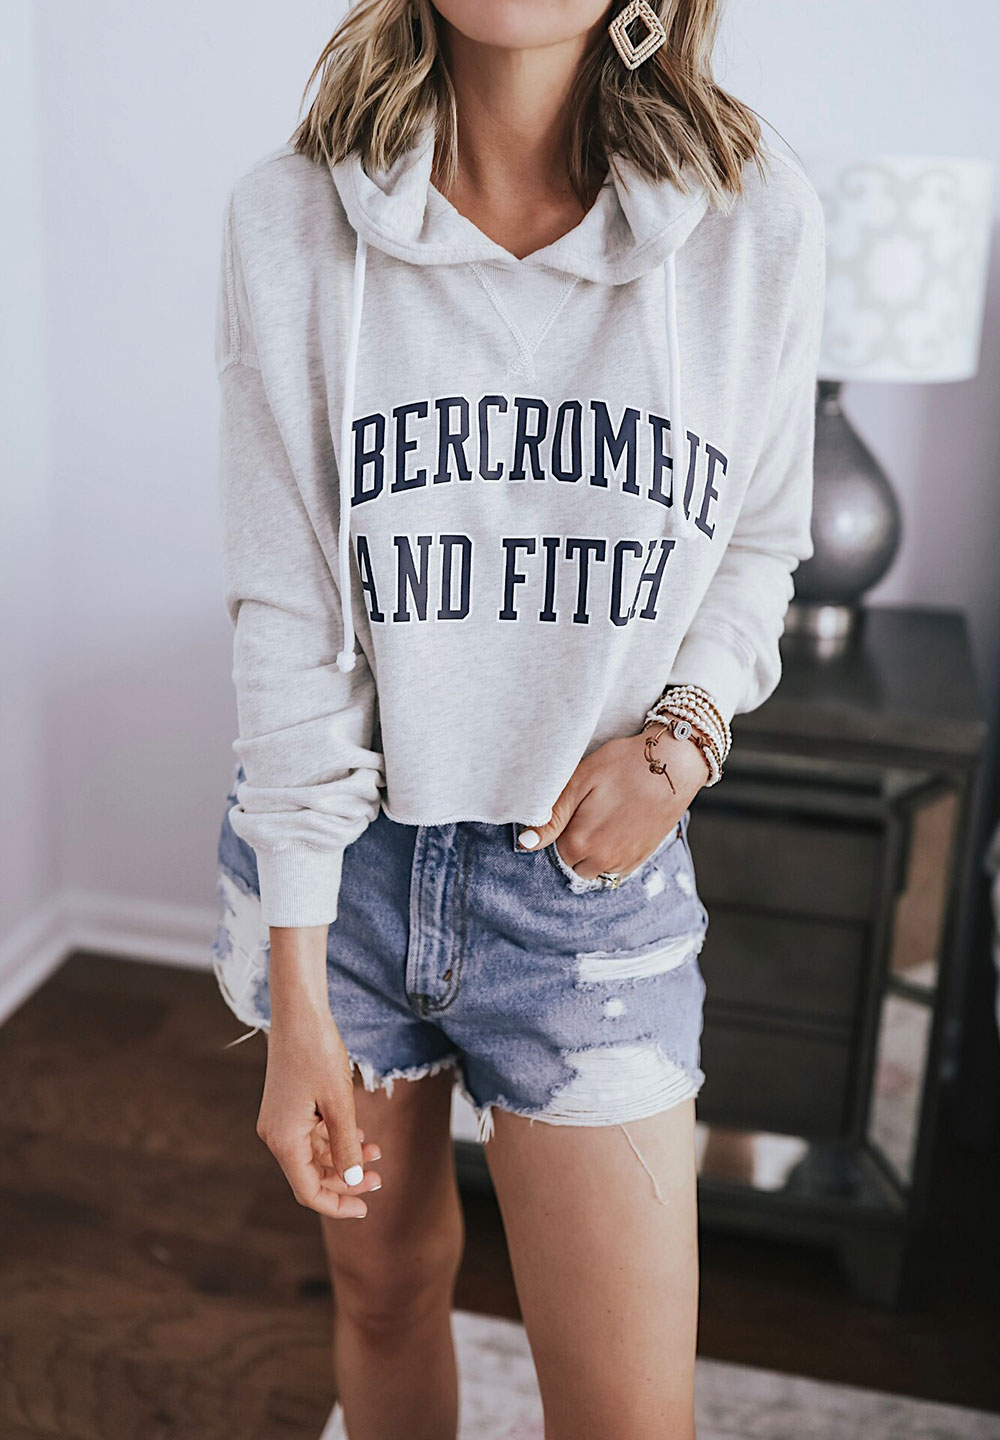 Abercrombie & Fitch Spring Styles